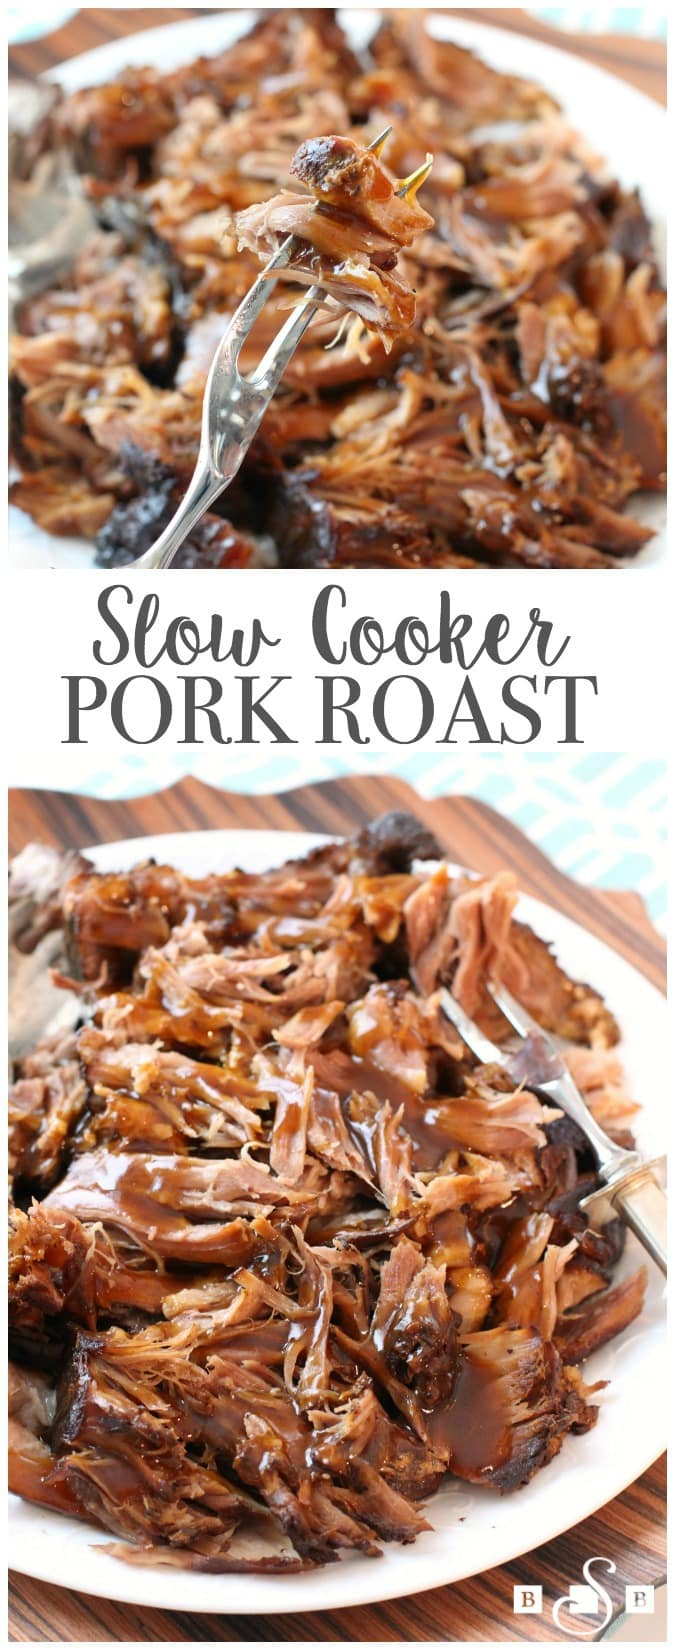 Slow Cooker Pork Roast made with simple ingredients you have in your pantry! Fall-apart tender pork with a flavorful gravy on top make this recipe amazing. Easy #slowcooker #recipe from Butter With A Side of Bread